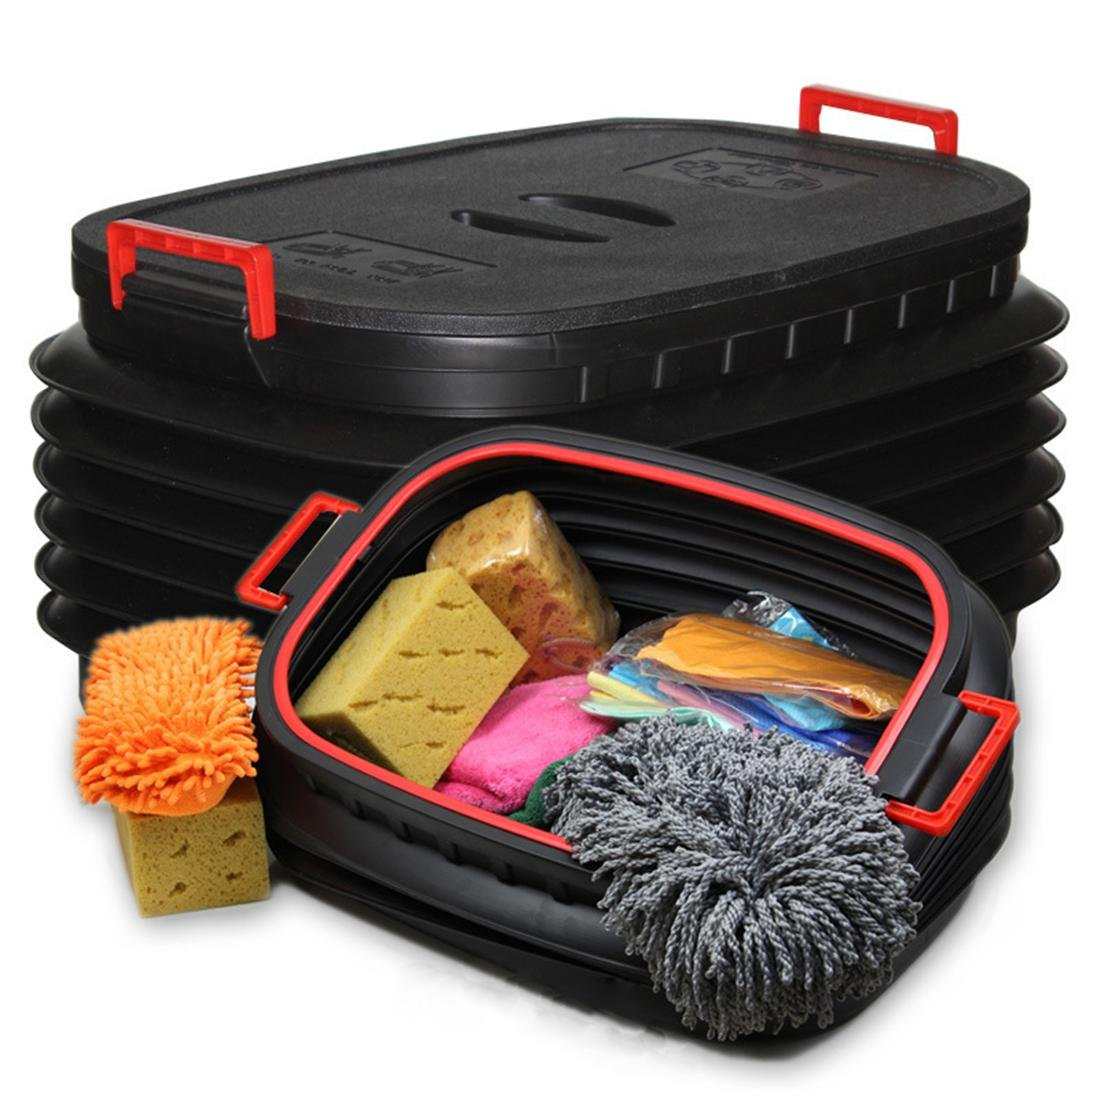 Car SUV Collapsible Plastic Bucket Box Water Fishing Barrel, Large Space Auto Foldable Garbage Bin Tidy Storage Cleaning Kit Tool Organiser 60L Zcar